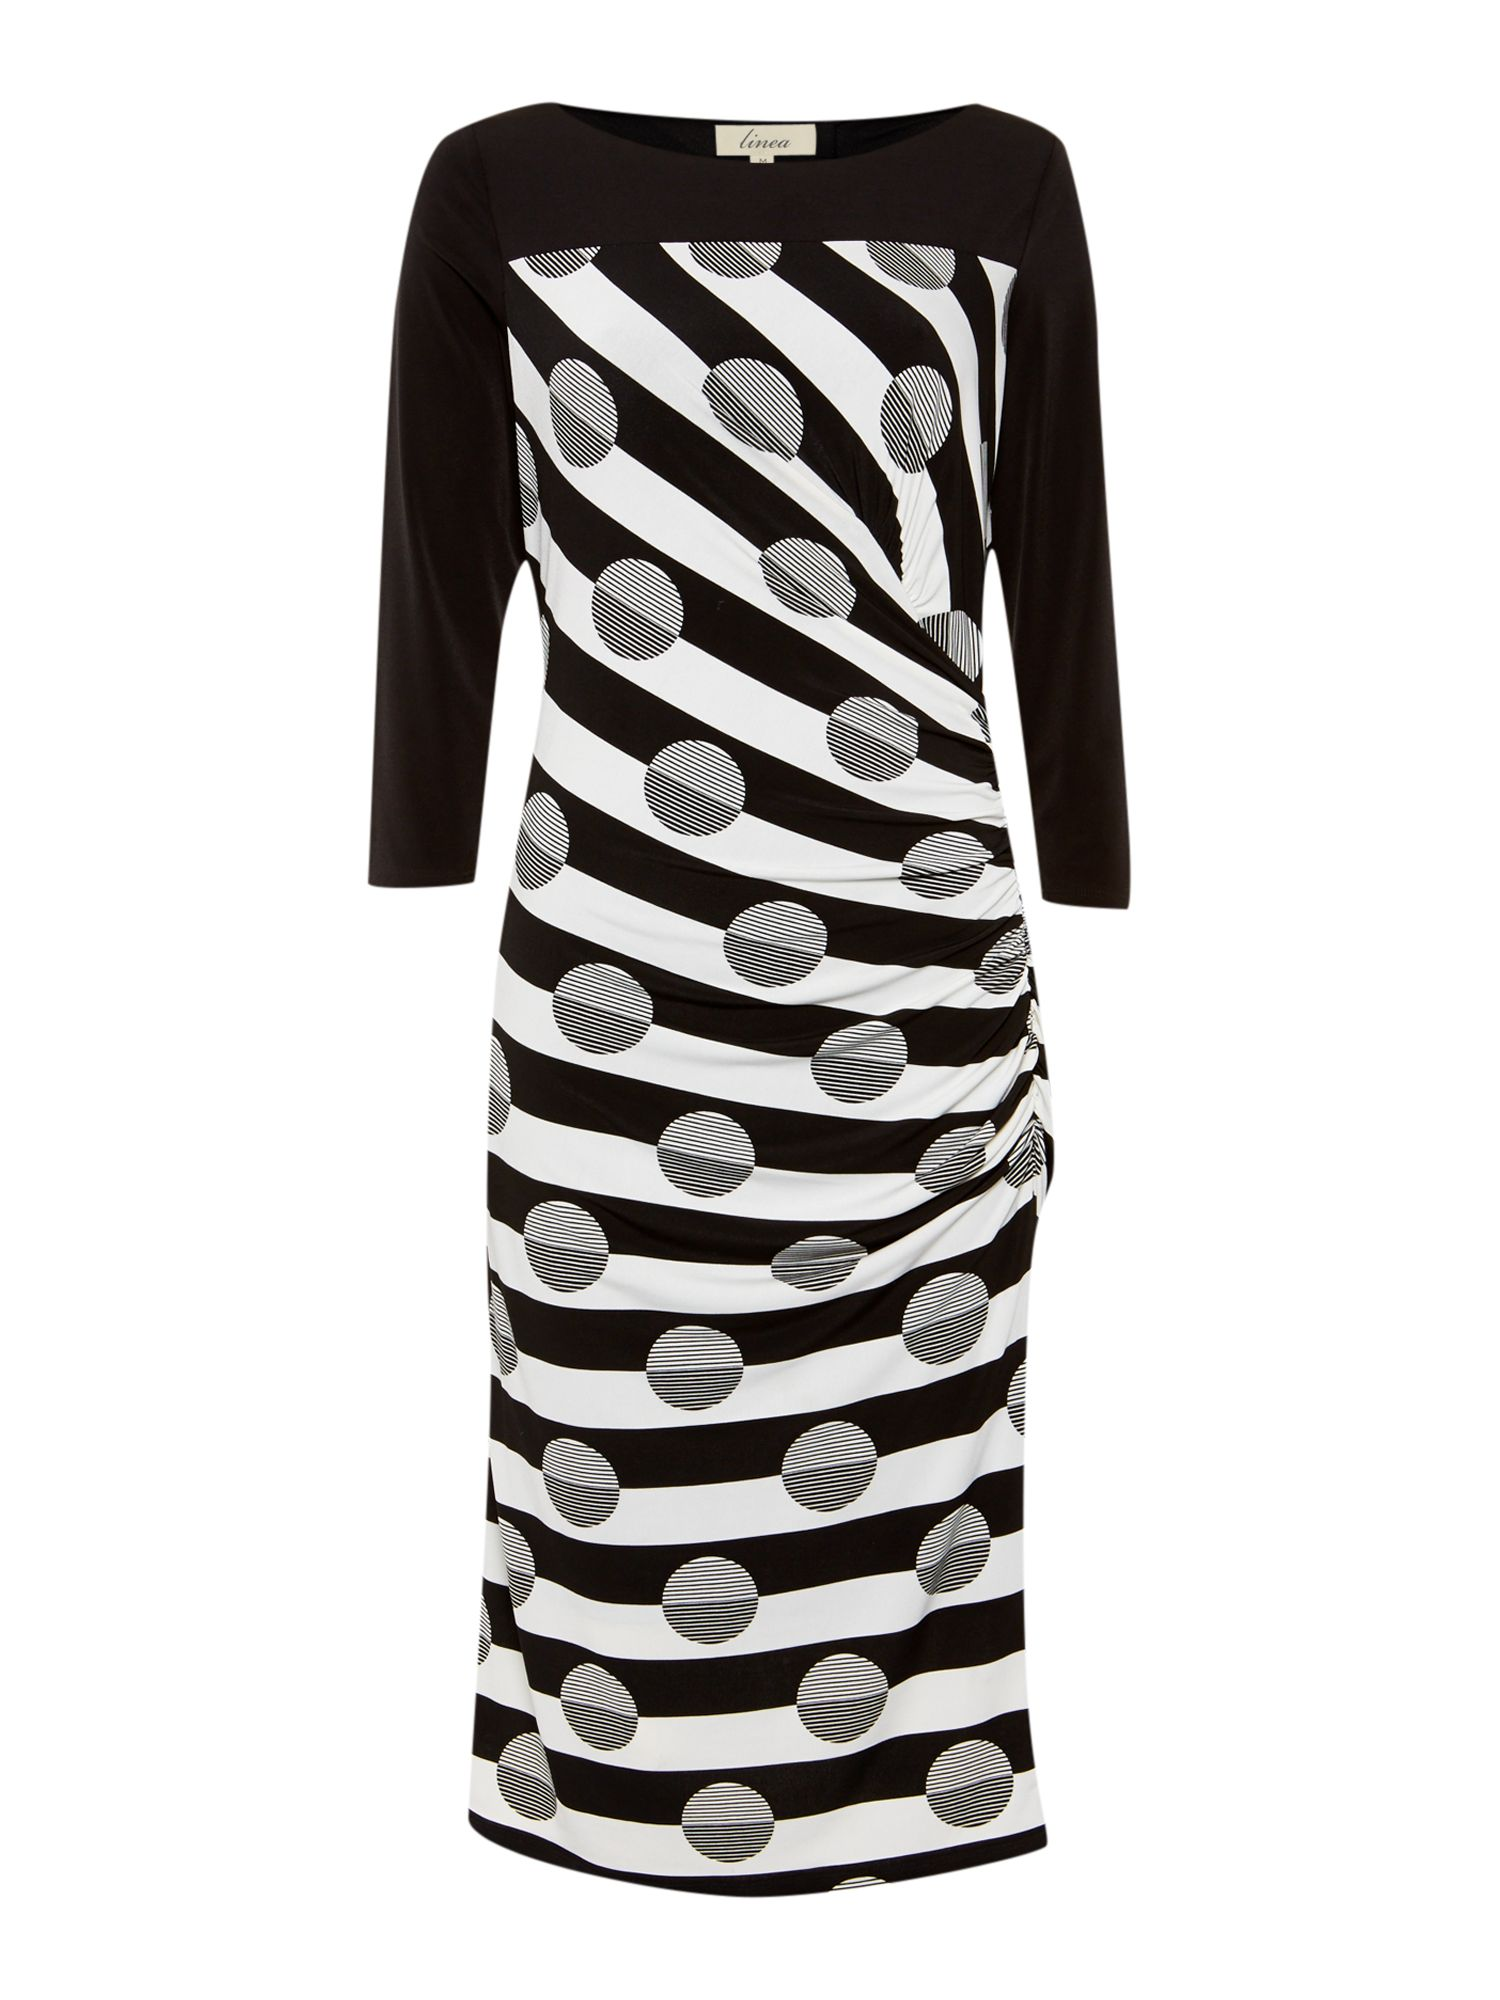 Stripe and Spot Dress